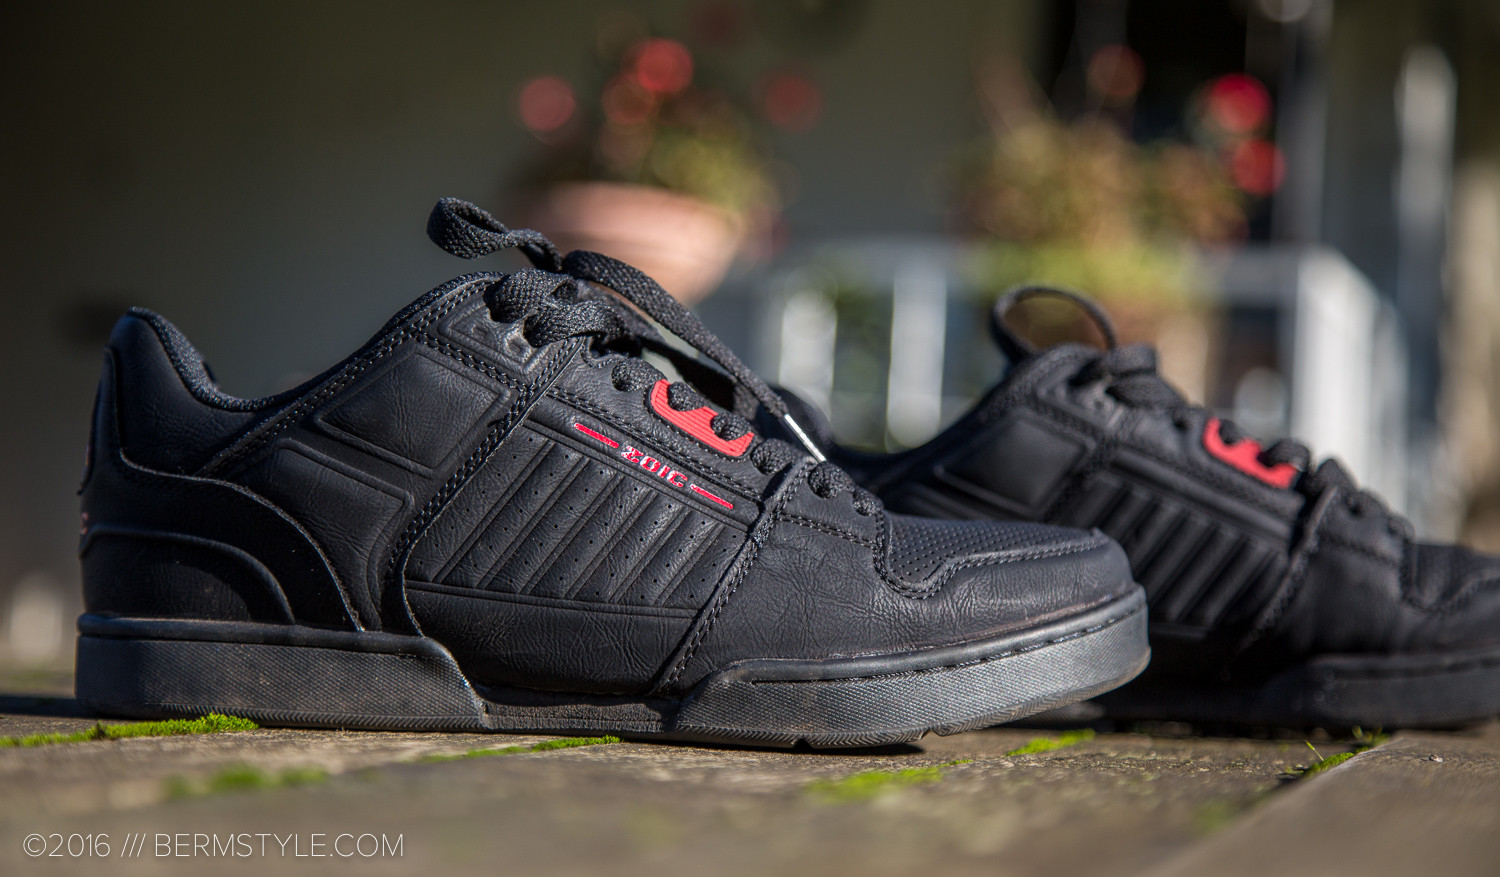 Review: Zoic Prophet Flat Pedal Shoes